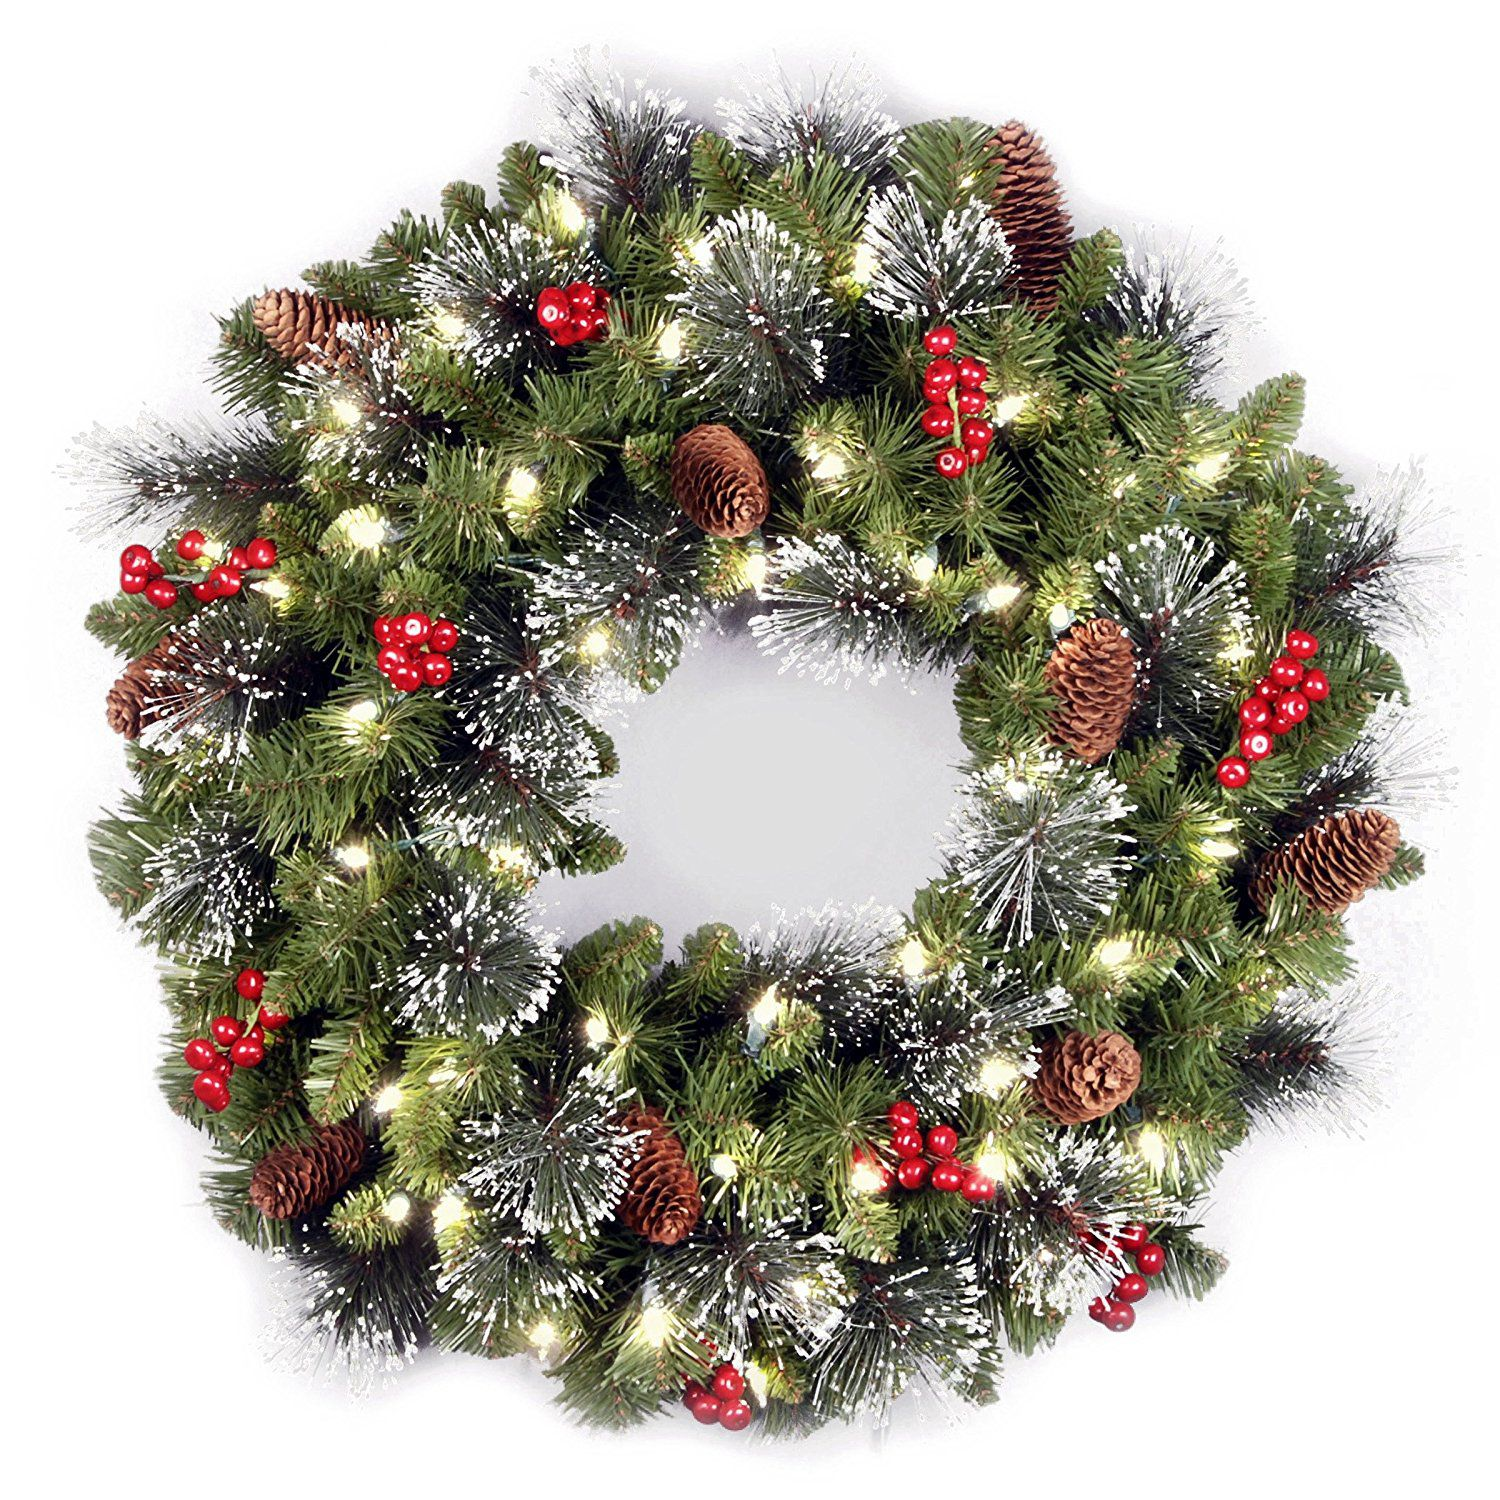 9 Best Holiday Decor Wreaths of 2018